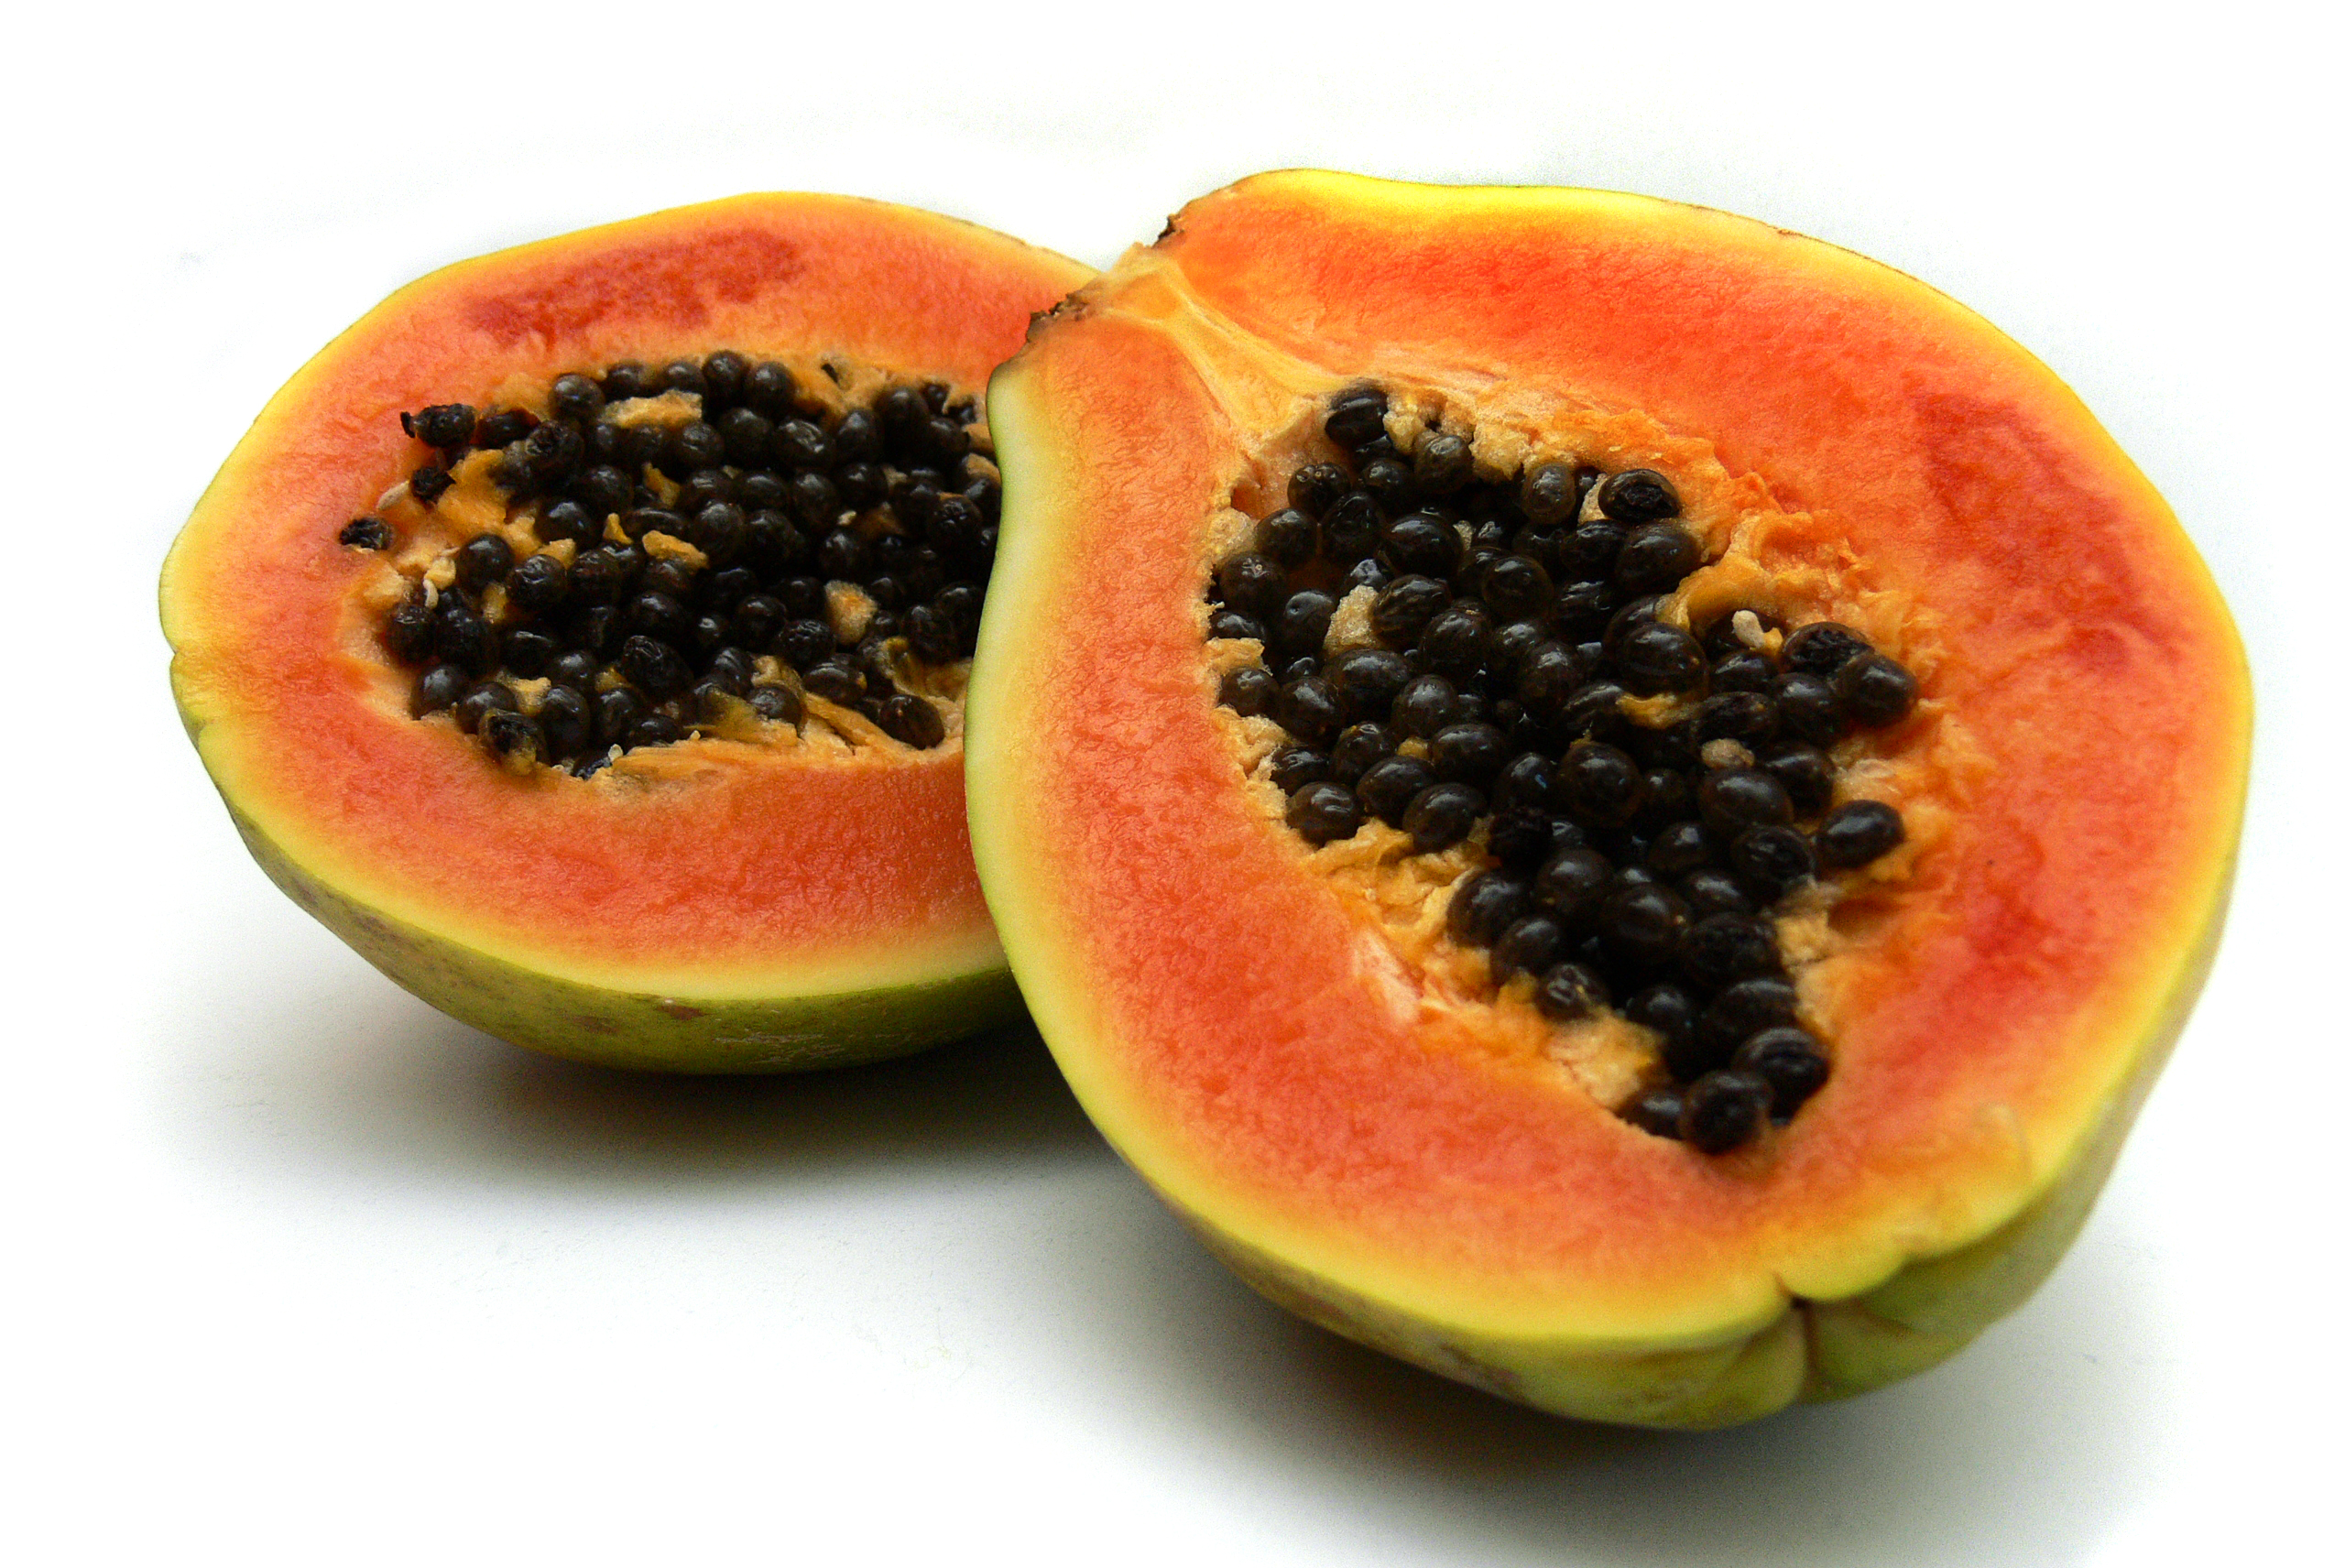 Papaya Ready to Eat Fruit 264.28 Kb